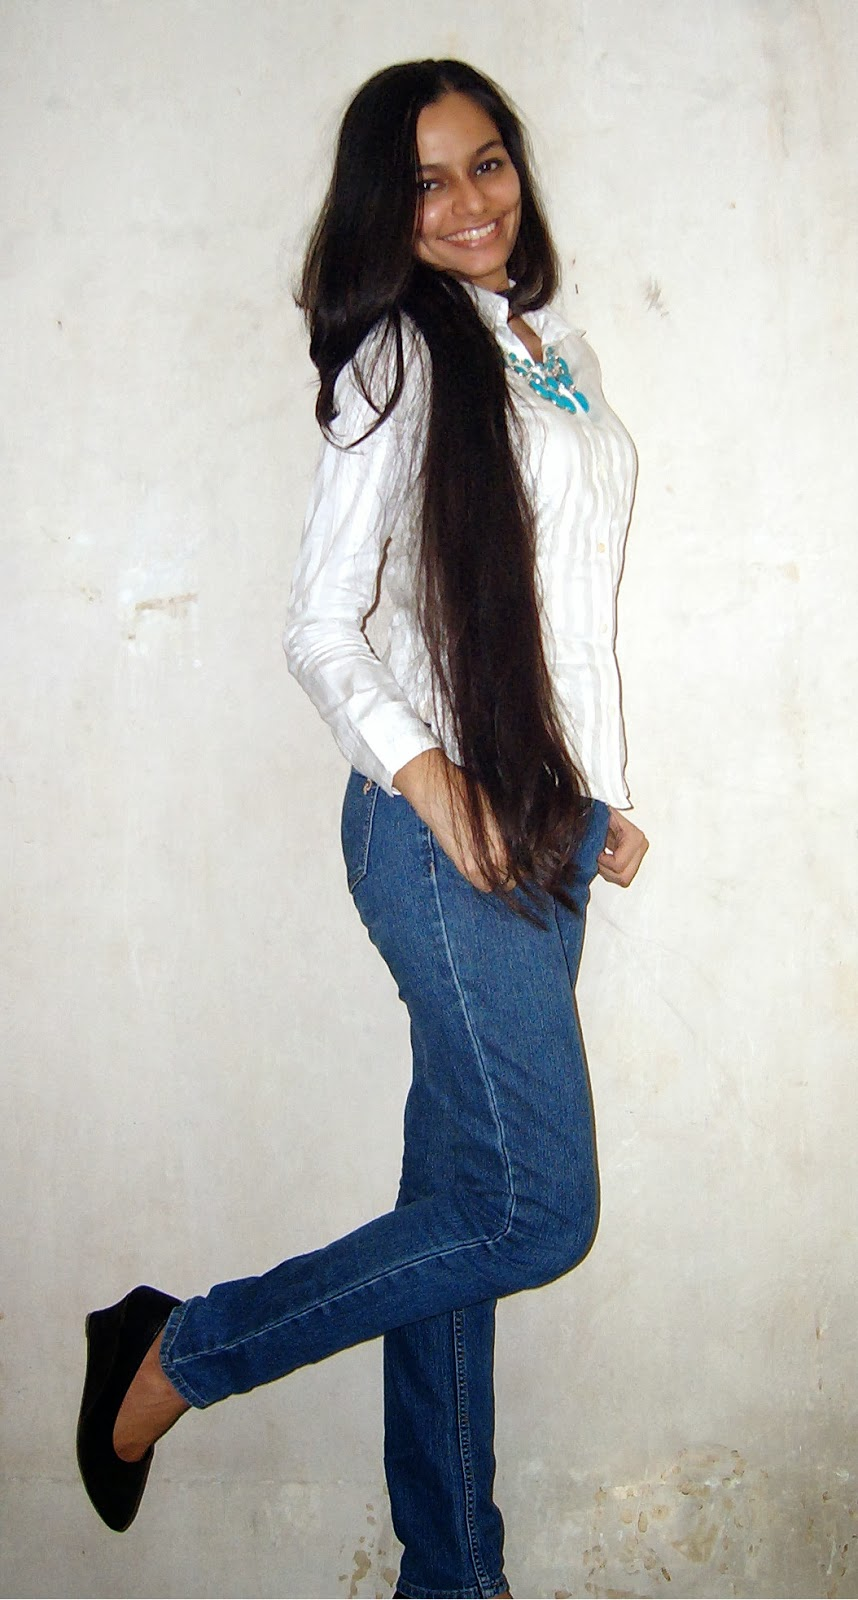 wedges, statement neckpiece, white shirt, blue jeans, casual outfit of the day, indian fashion blogger